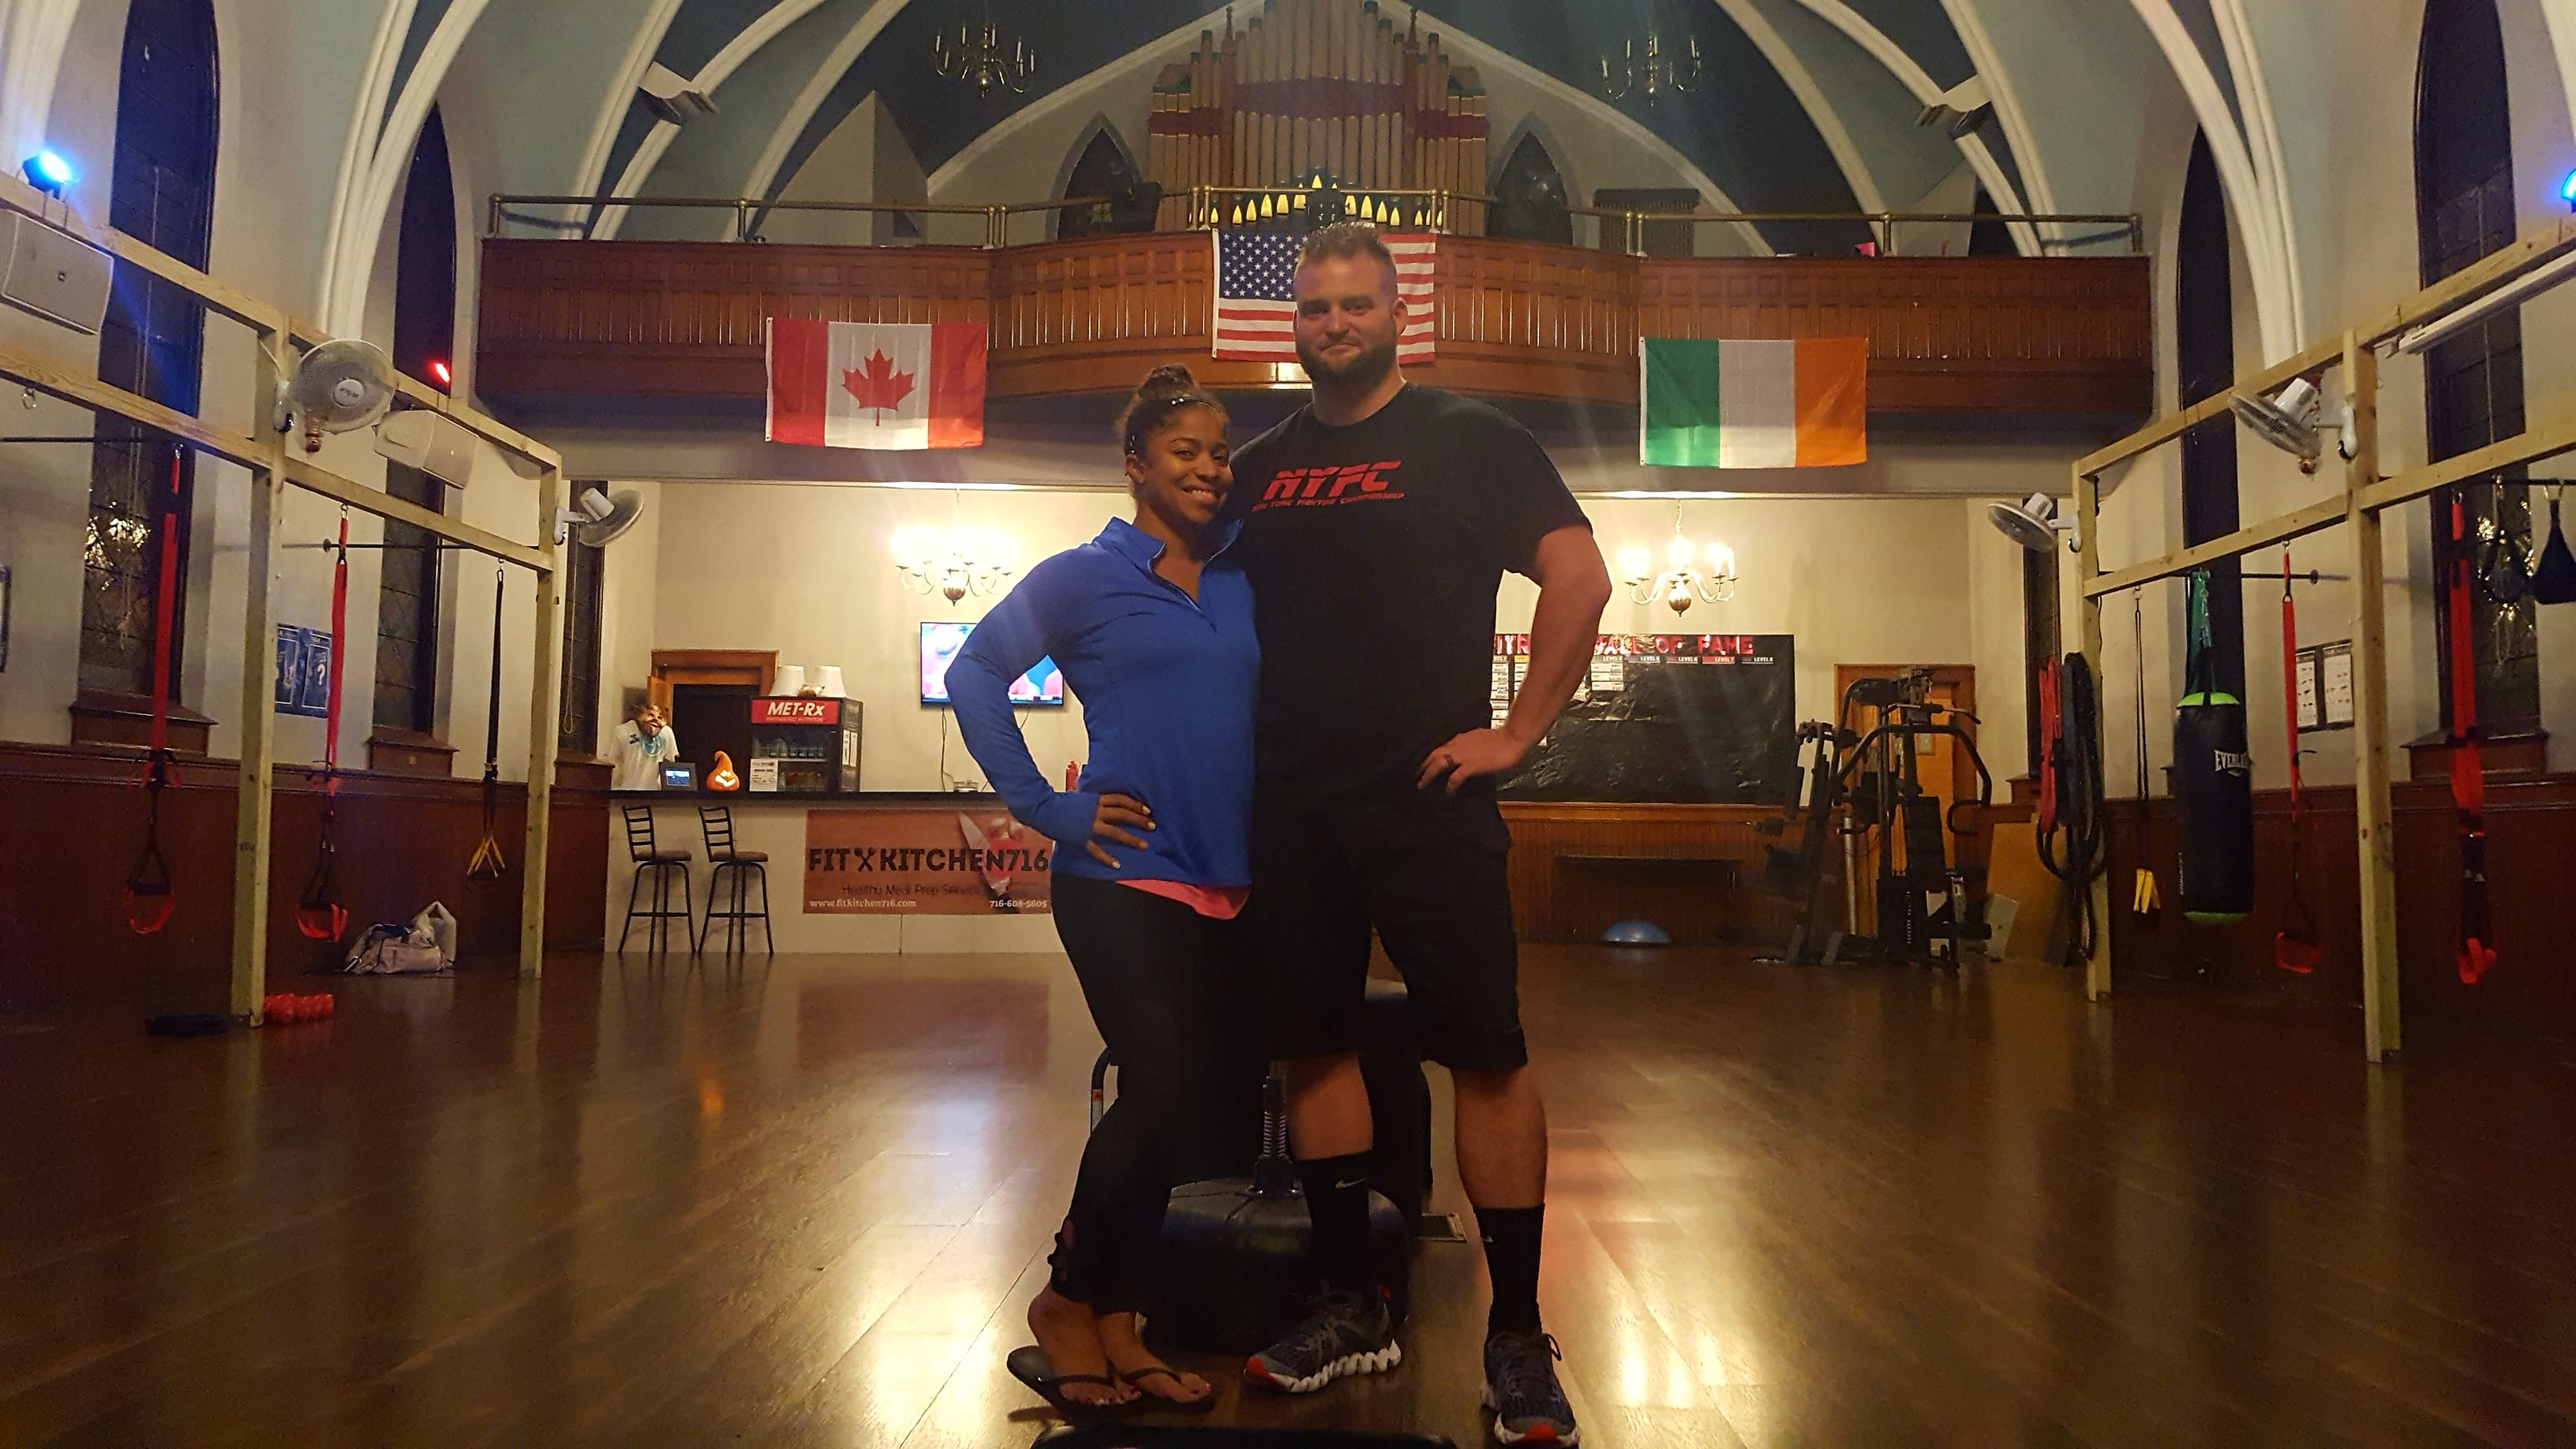 Ashley and Jeremy Ramsey opened their fitness studio last year in the former Ascension Catholic Church.